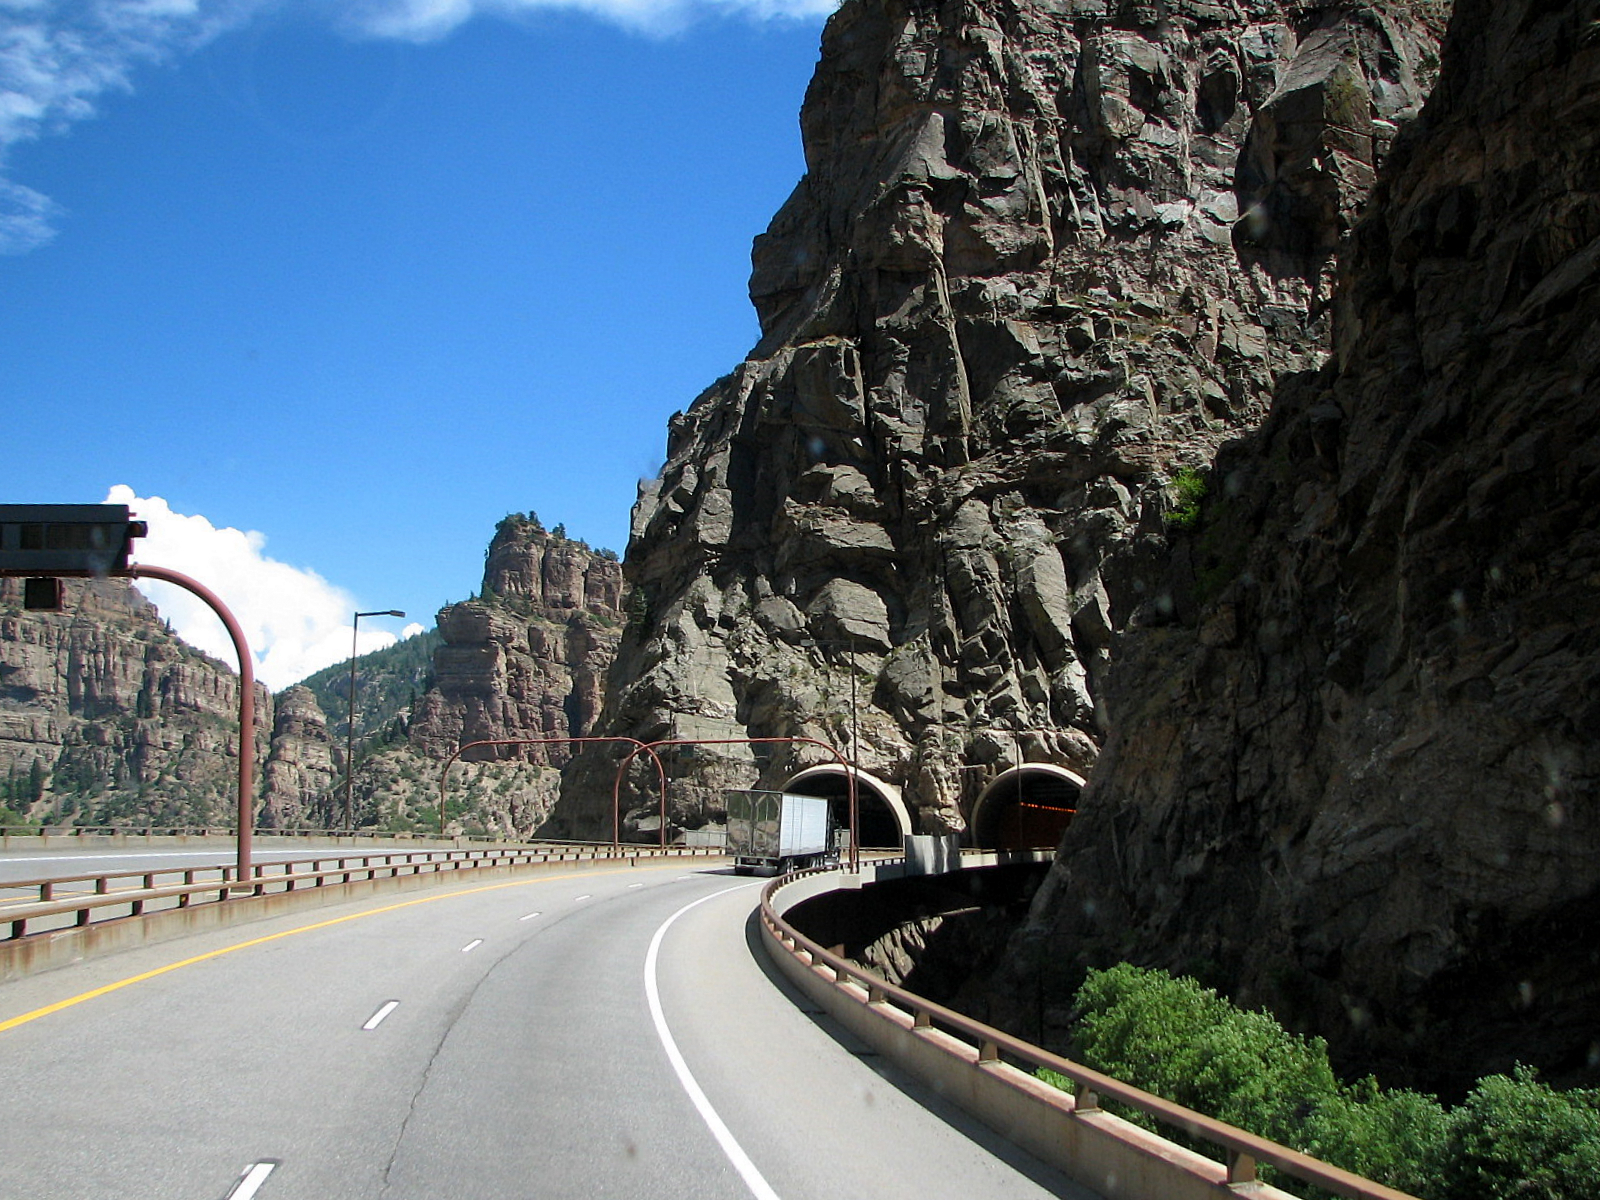 Eisenhower Tunnel in Colarado, USA